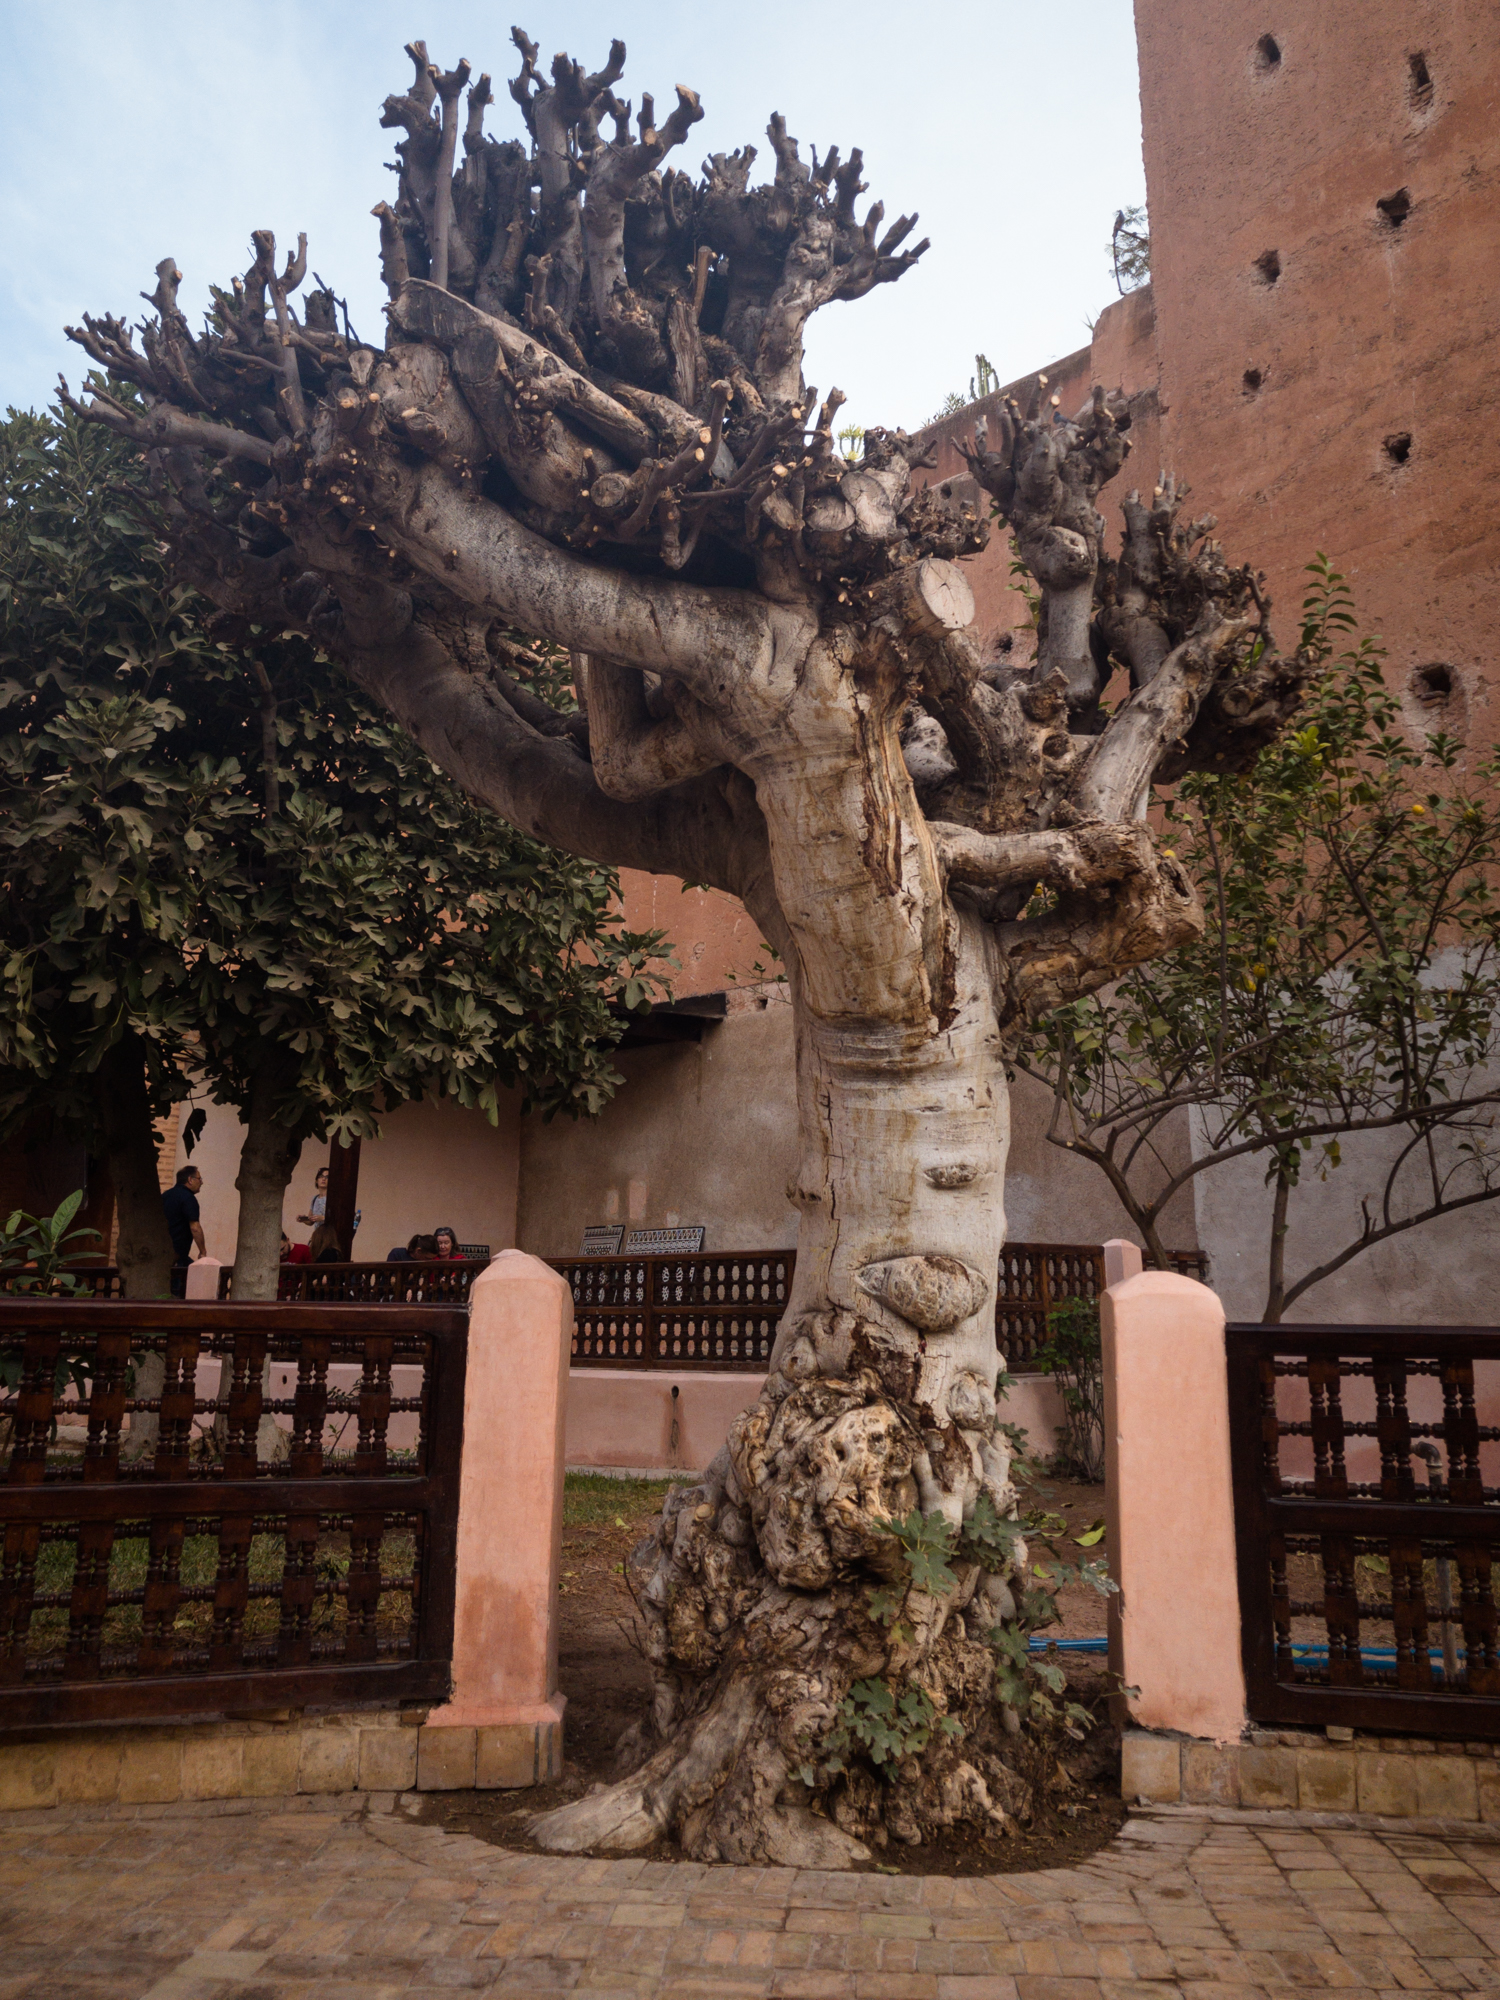 Marrakech_iPhone8+_Photos - Blog_Photos-58.jpg